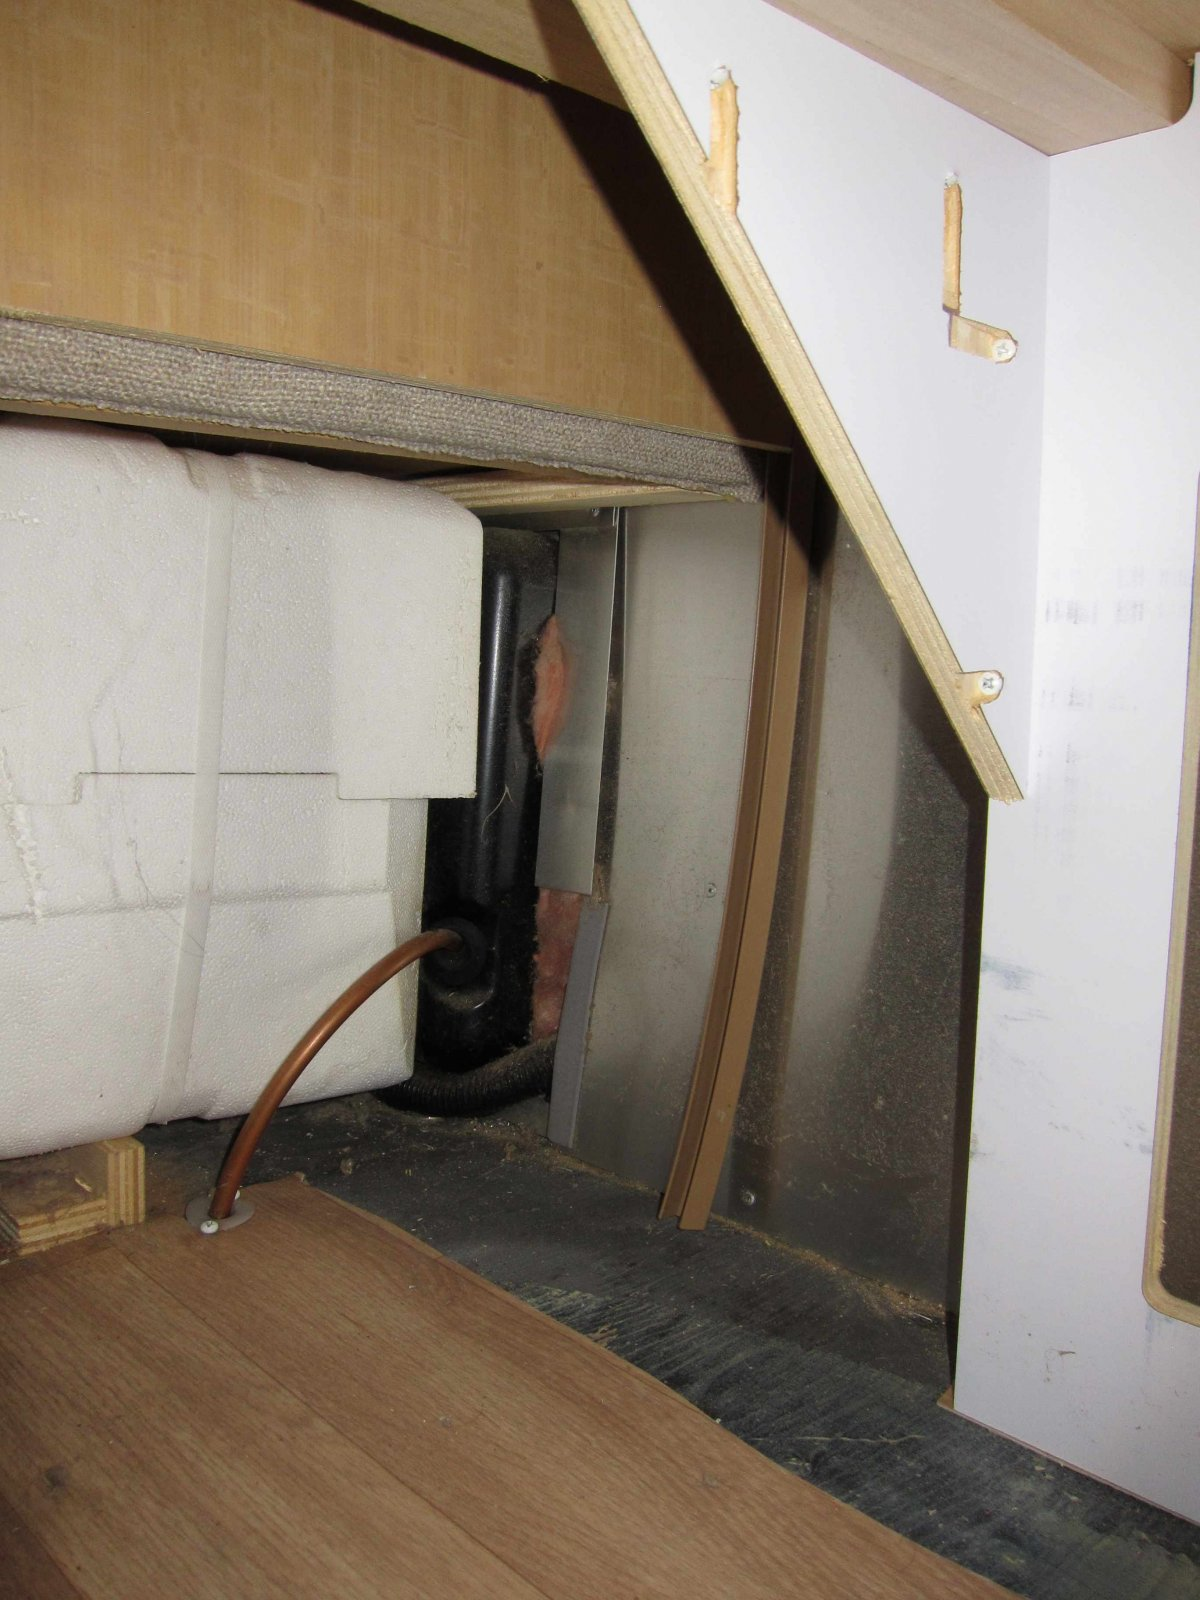 Click image for larger version  Name:under the bed looking at water heater.jpg Views:62 Size:247.8 KB ID:222096